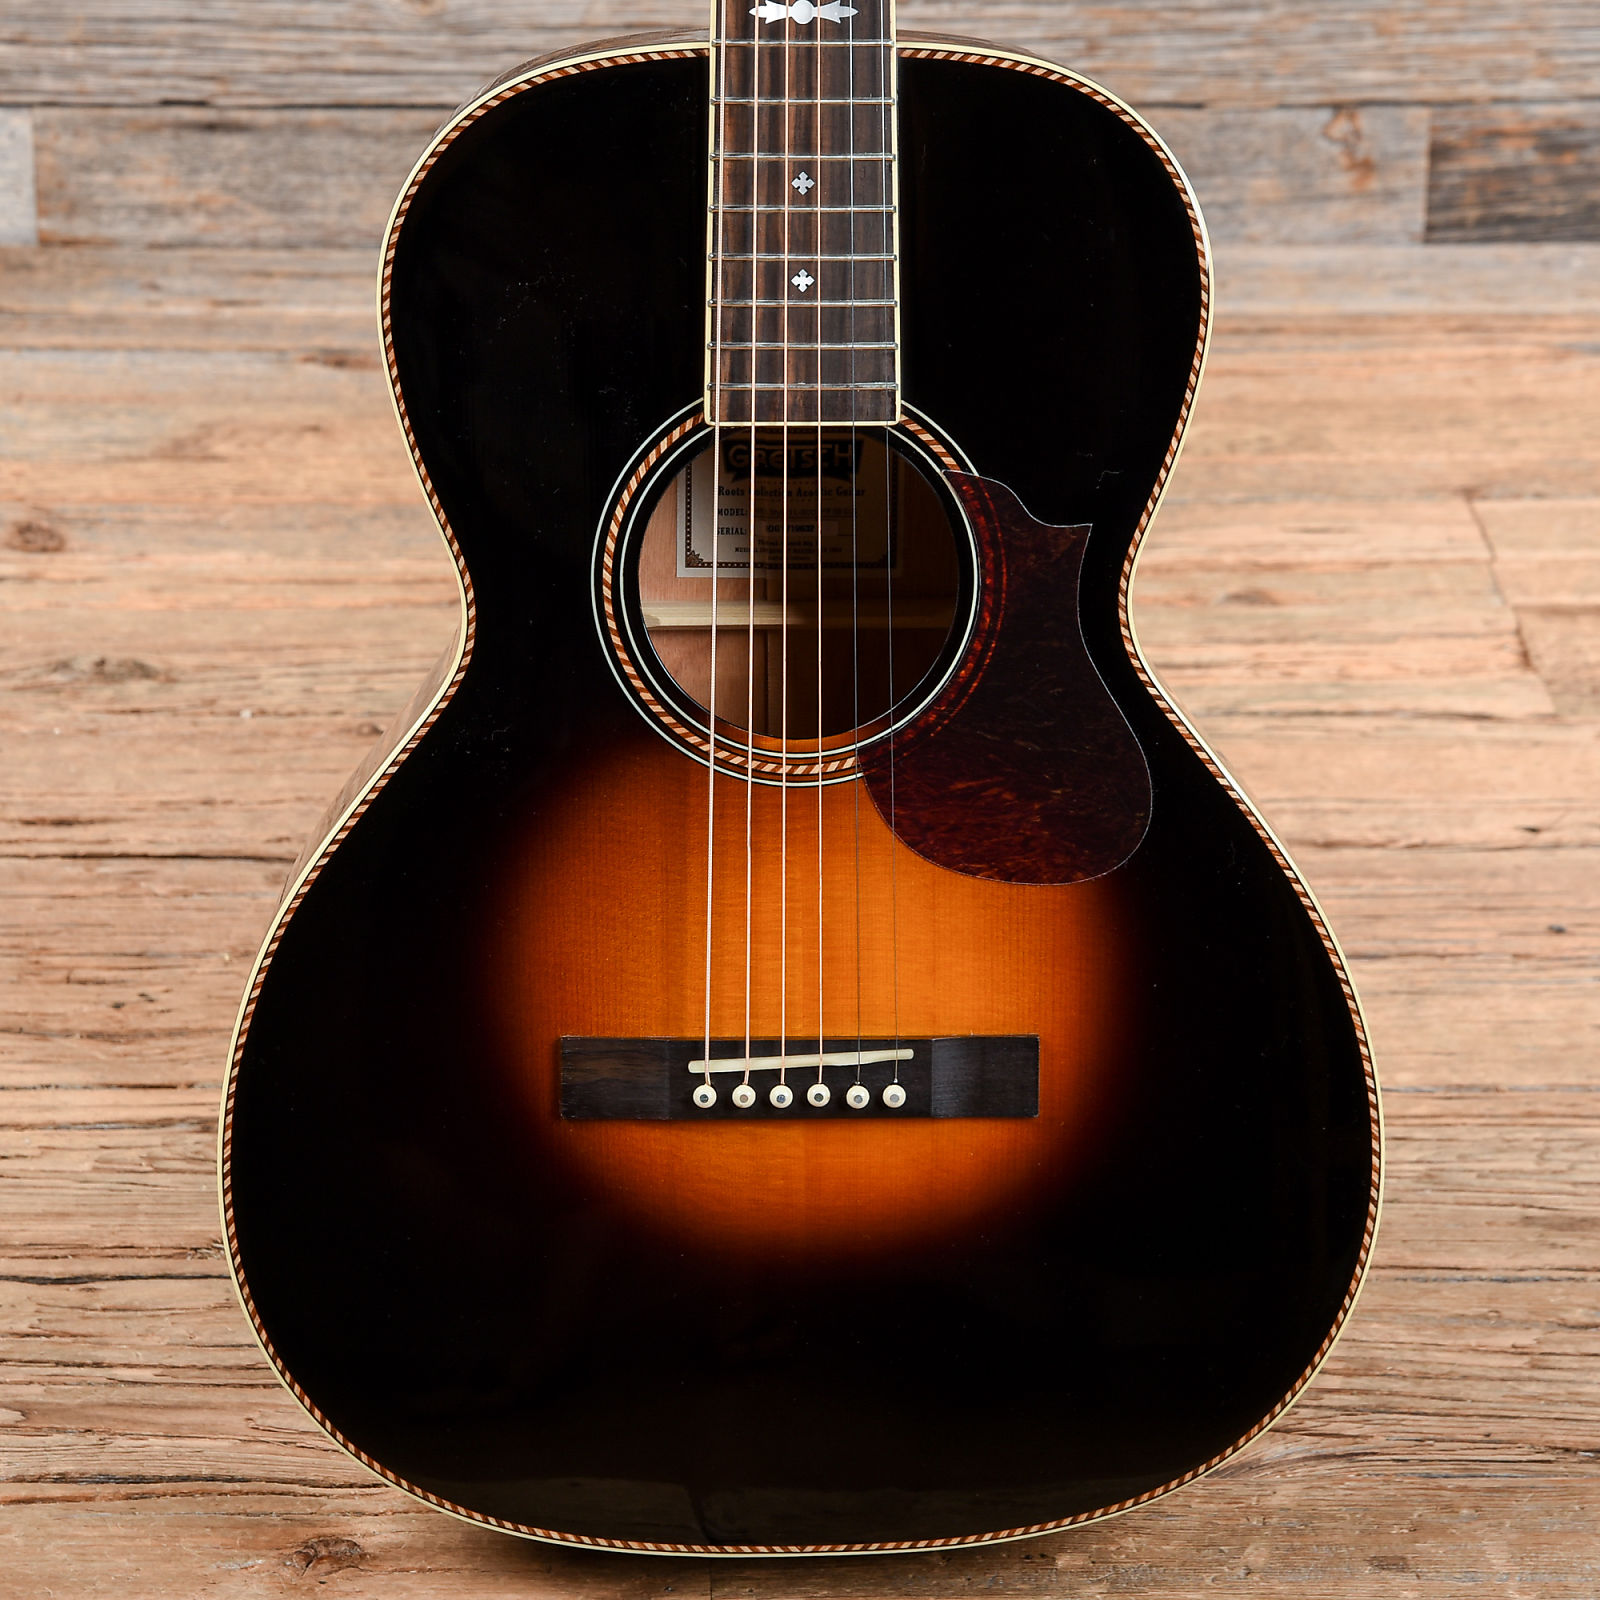 Gretsch Acoustic Guitars >> Gretsch G9531 Style 3 Double 0 Acoustic Guitar Appalachia Burst Used